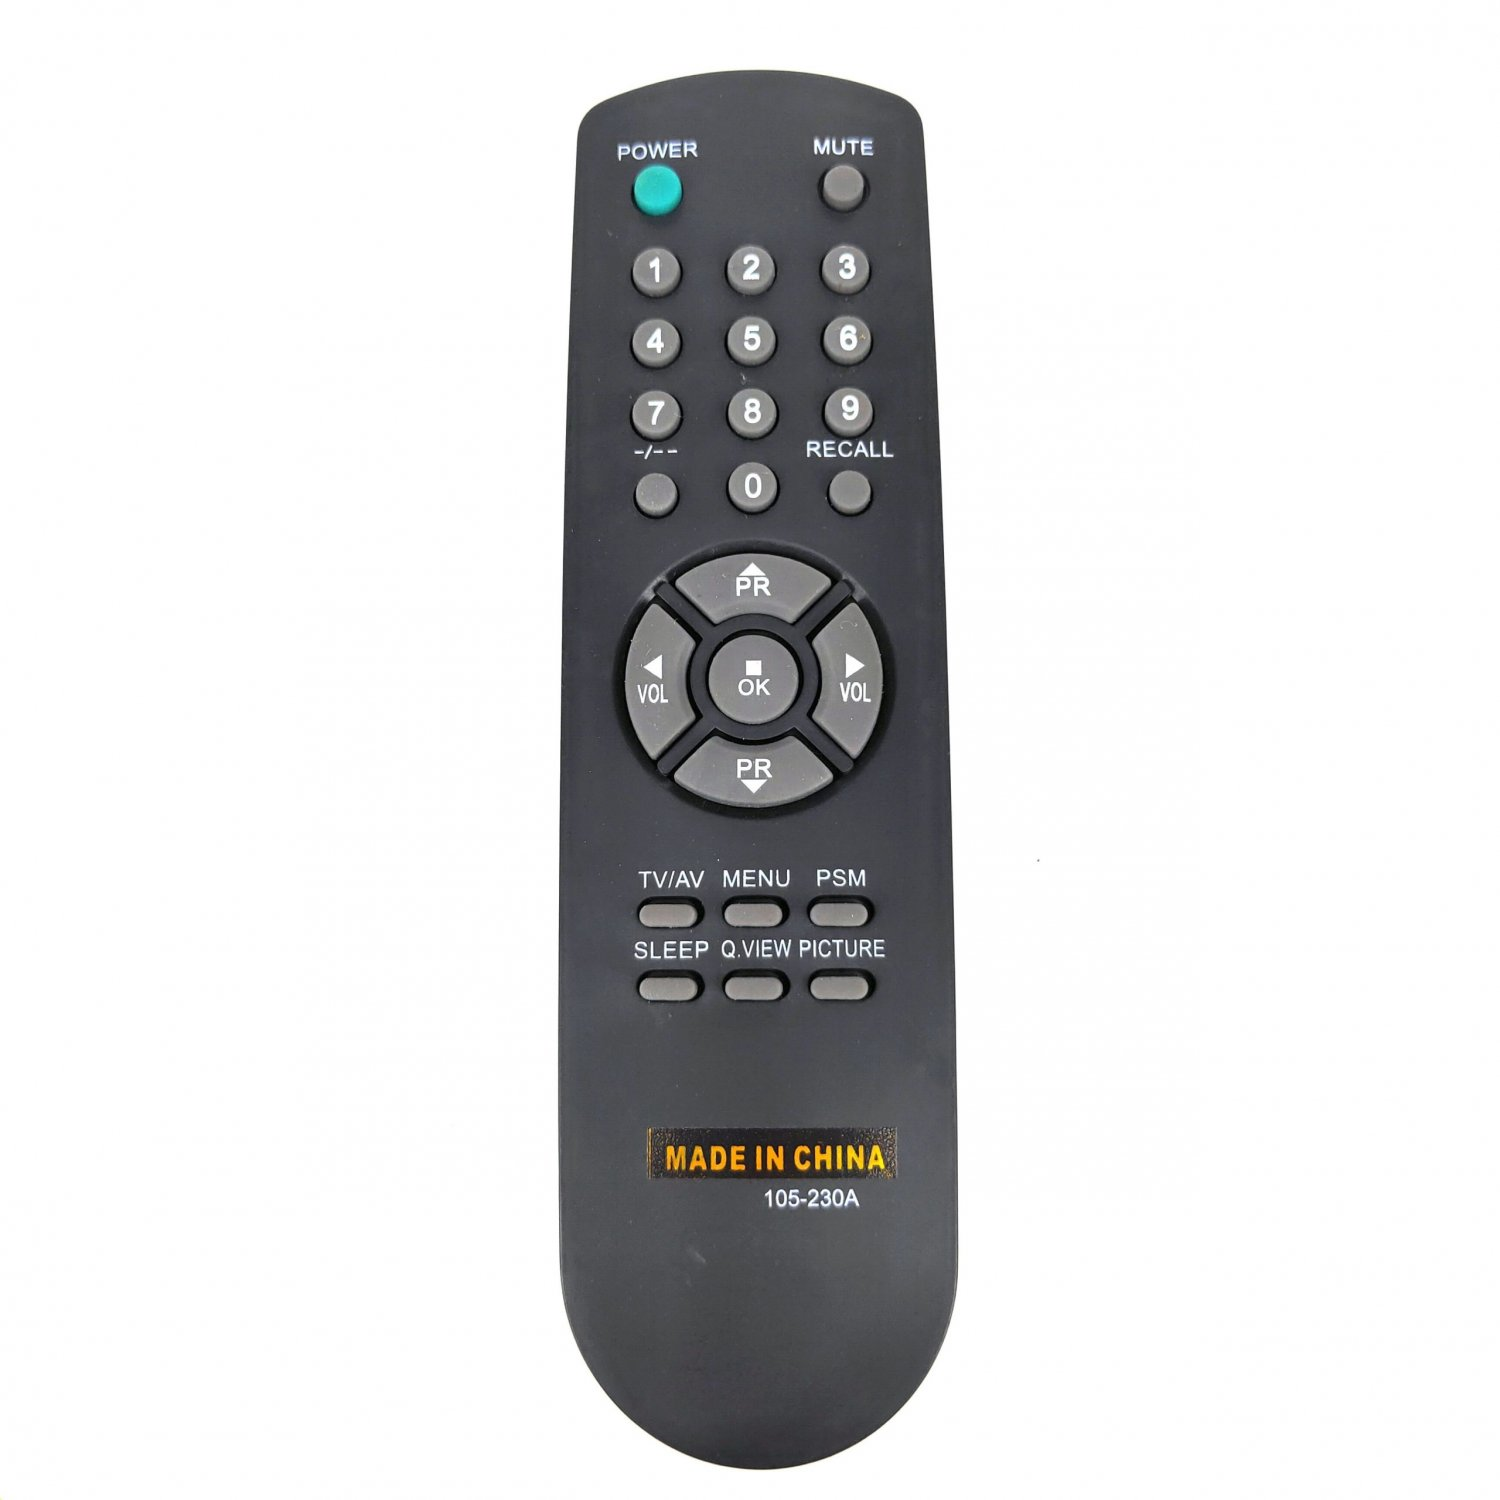 Used 105-230A Replacement Remote Control For Goldstar TV CF-14A40 CF-20D60B CF-14A80 CF-20D70B